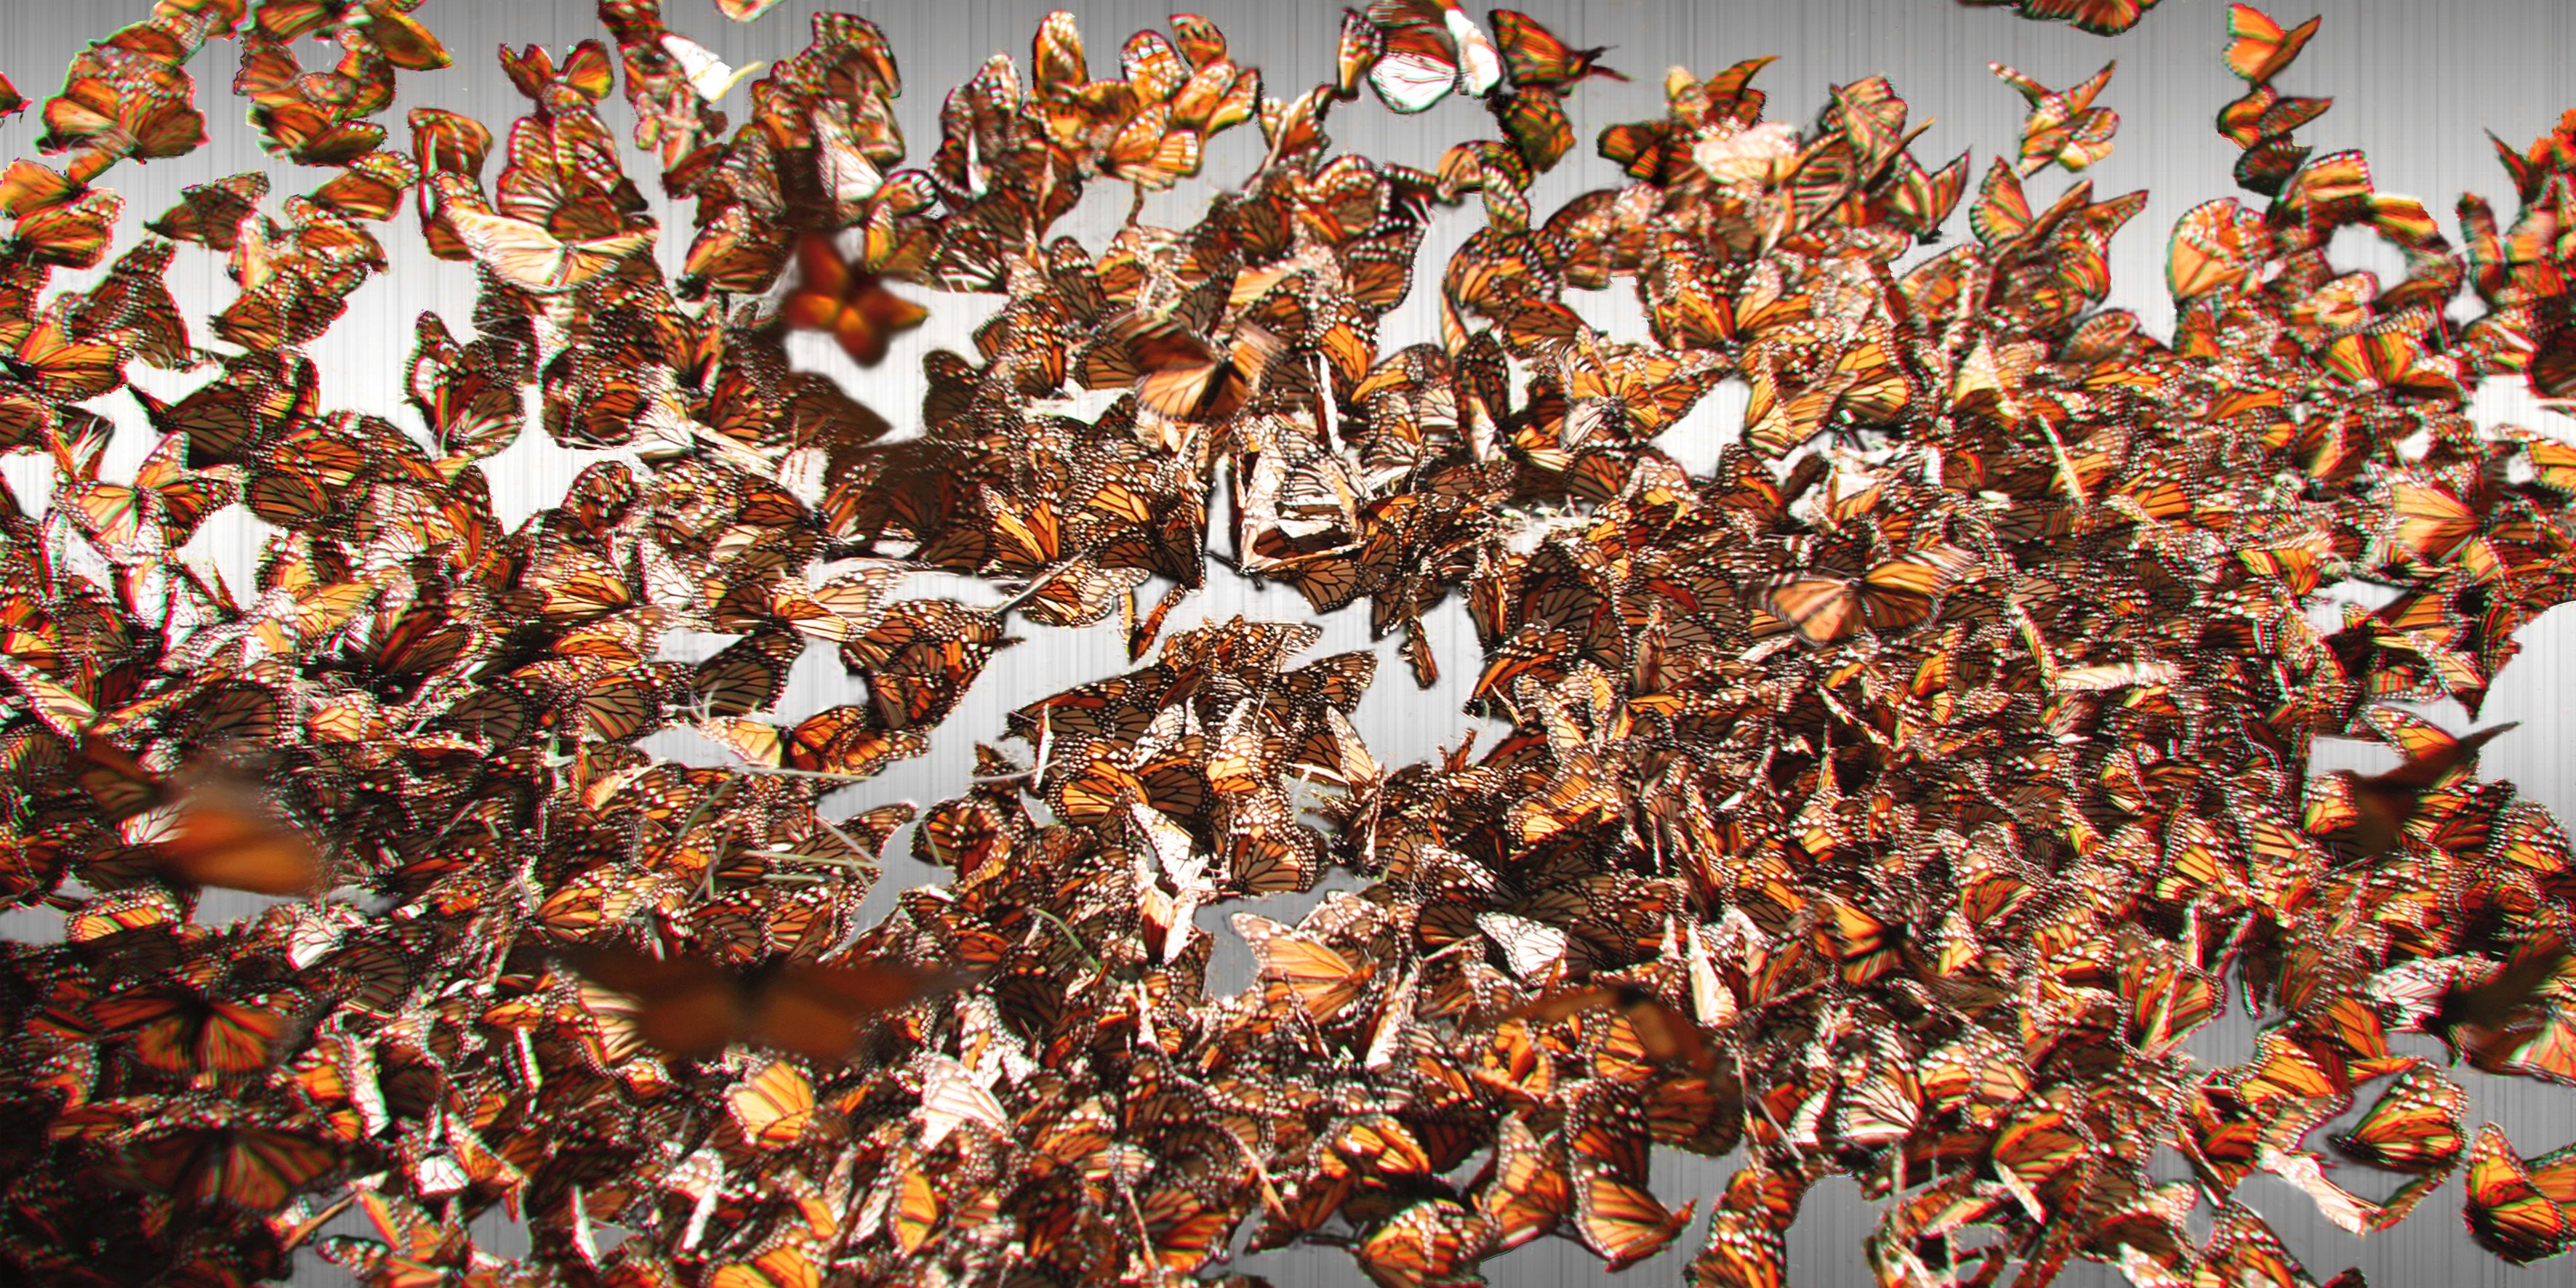 Migration n. 4 (Monarch Butterflies)